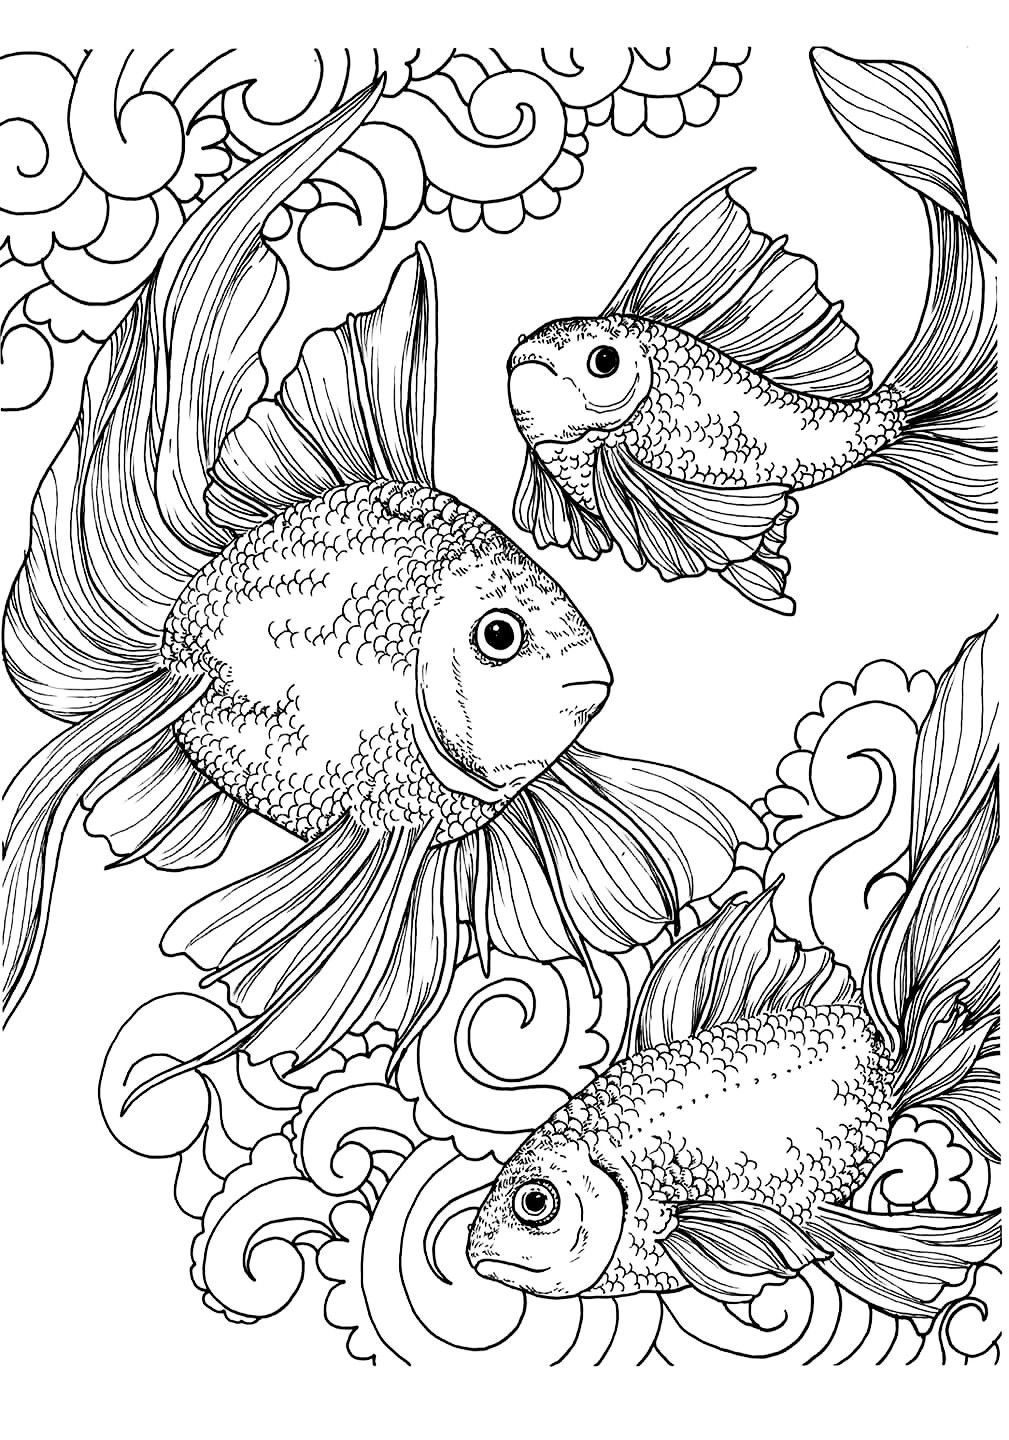 exotic animal coloring pages exotic animals adult coloring book designs myria exotic pages animal coloring